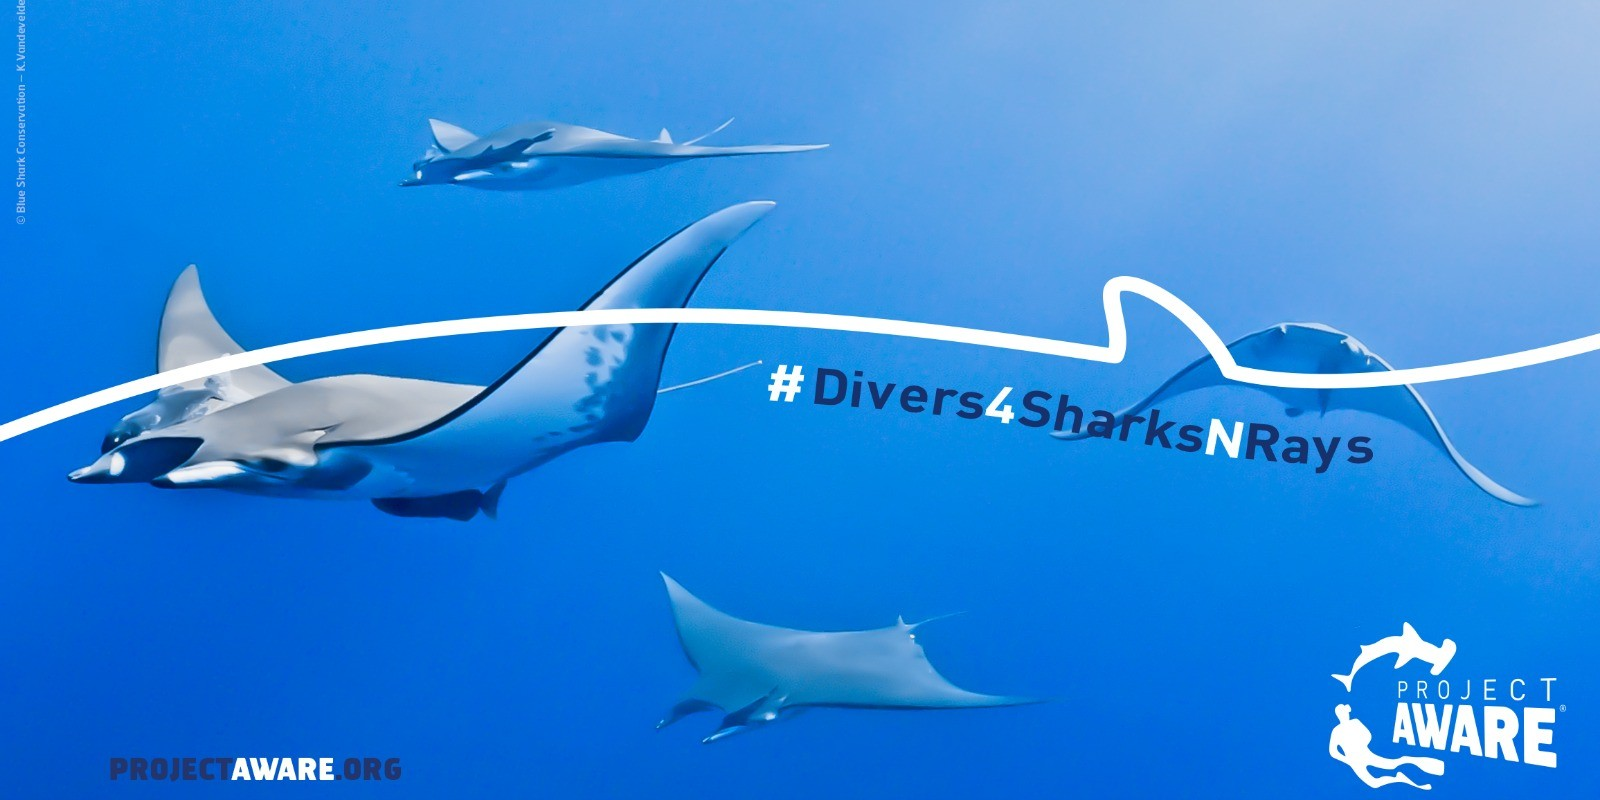 Divers4SharksNRays